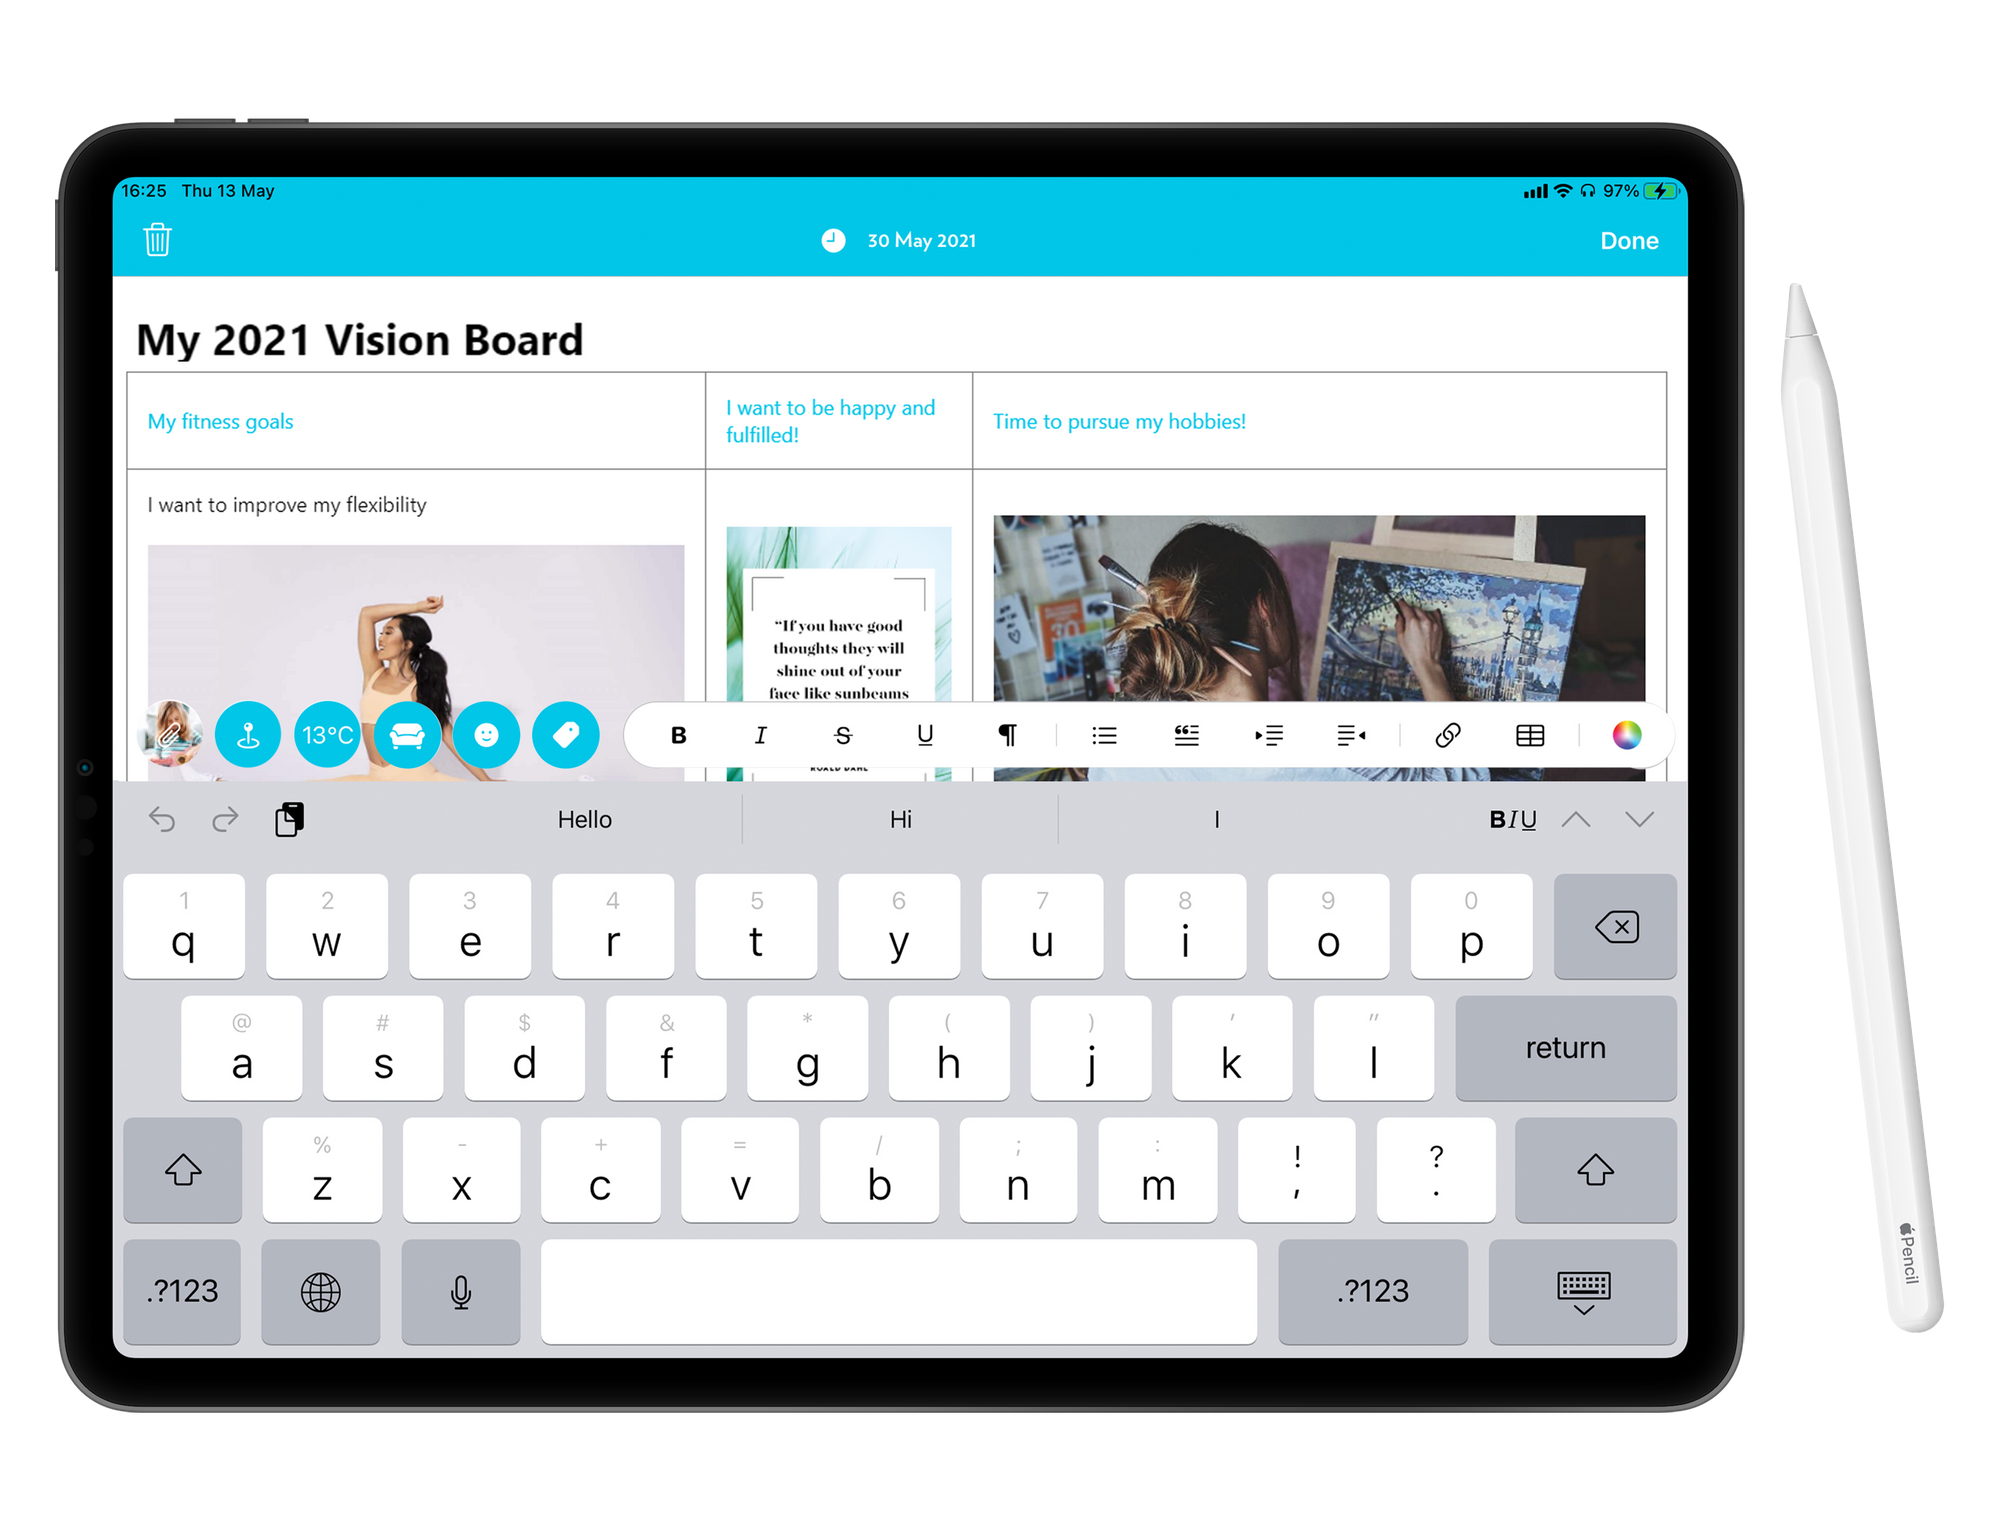 How you can create a vision board on Journey using an Apple pencil and the table function